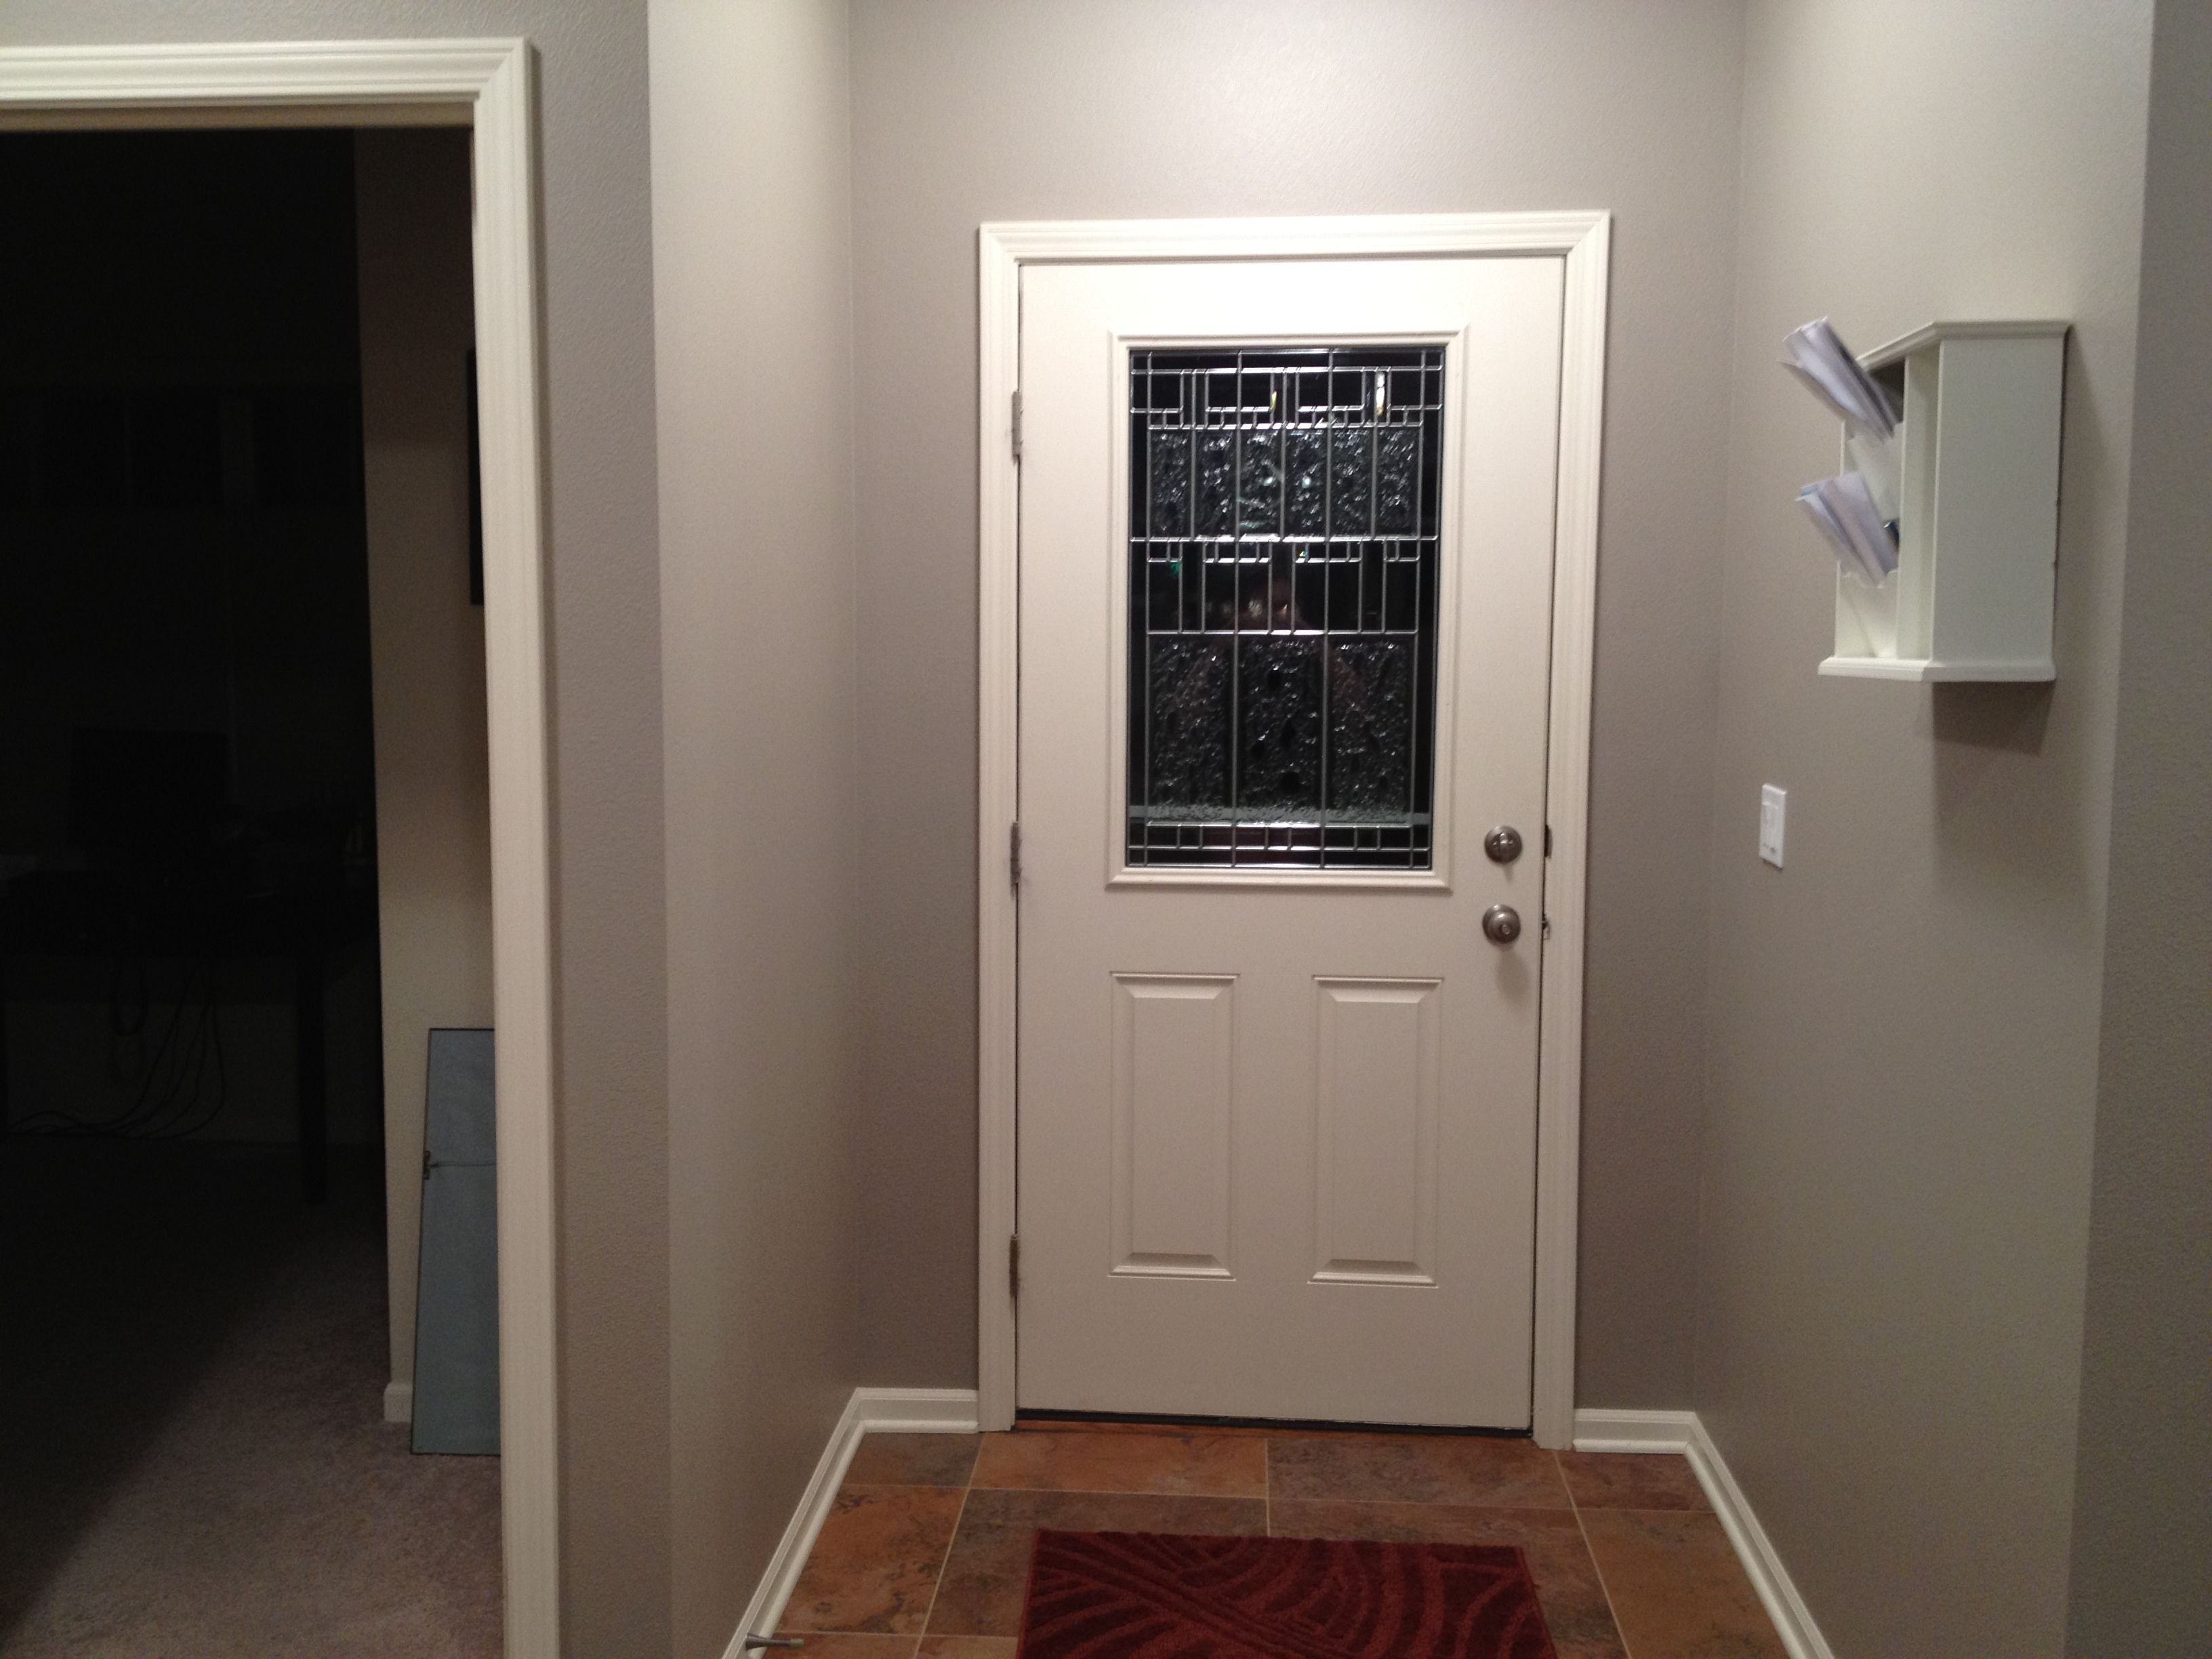 Sherwin Williams Mega Greige SW 7031 Really Nice Neutral For About Anywhere I Love